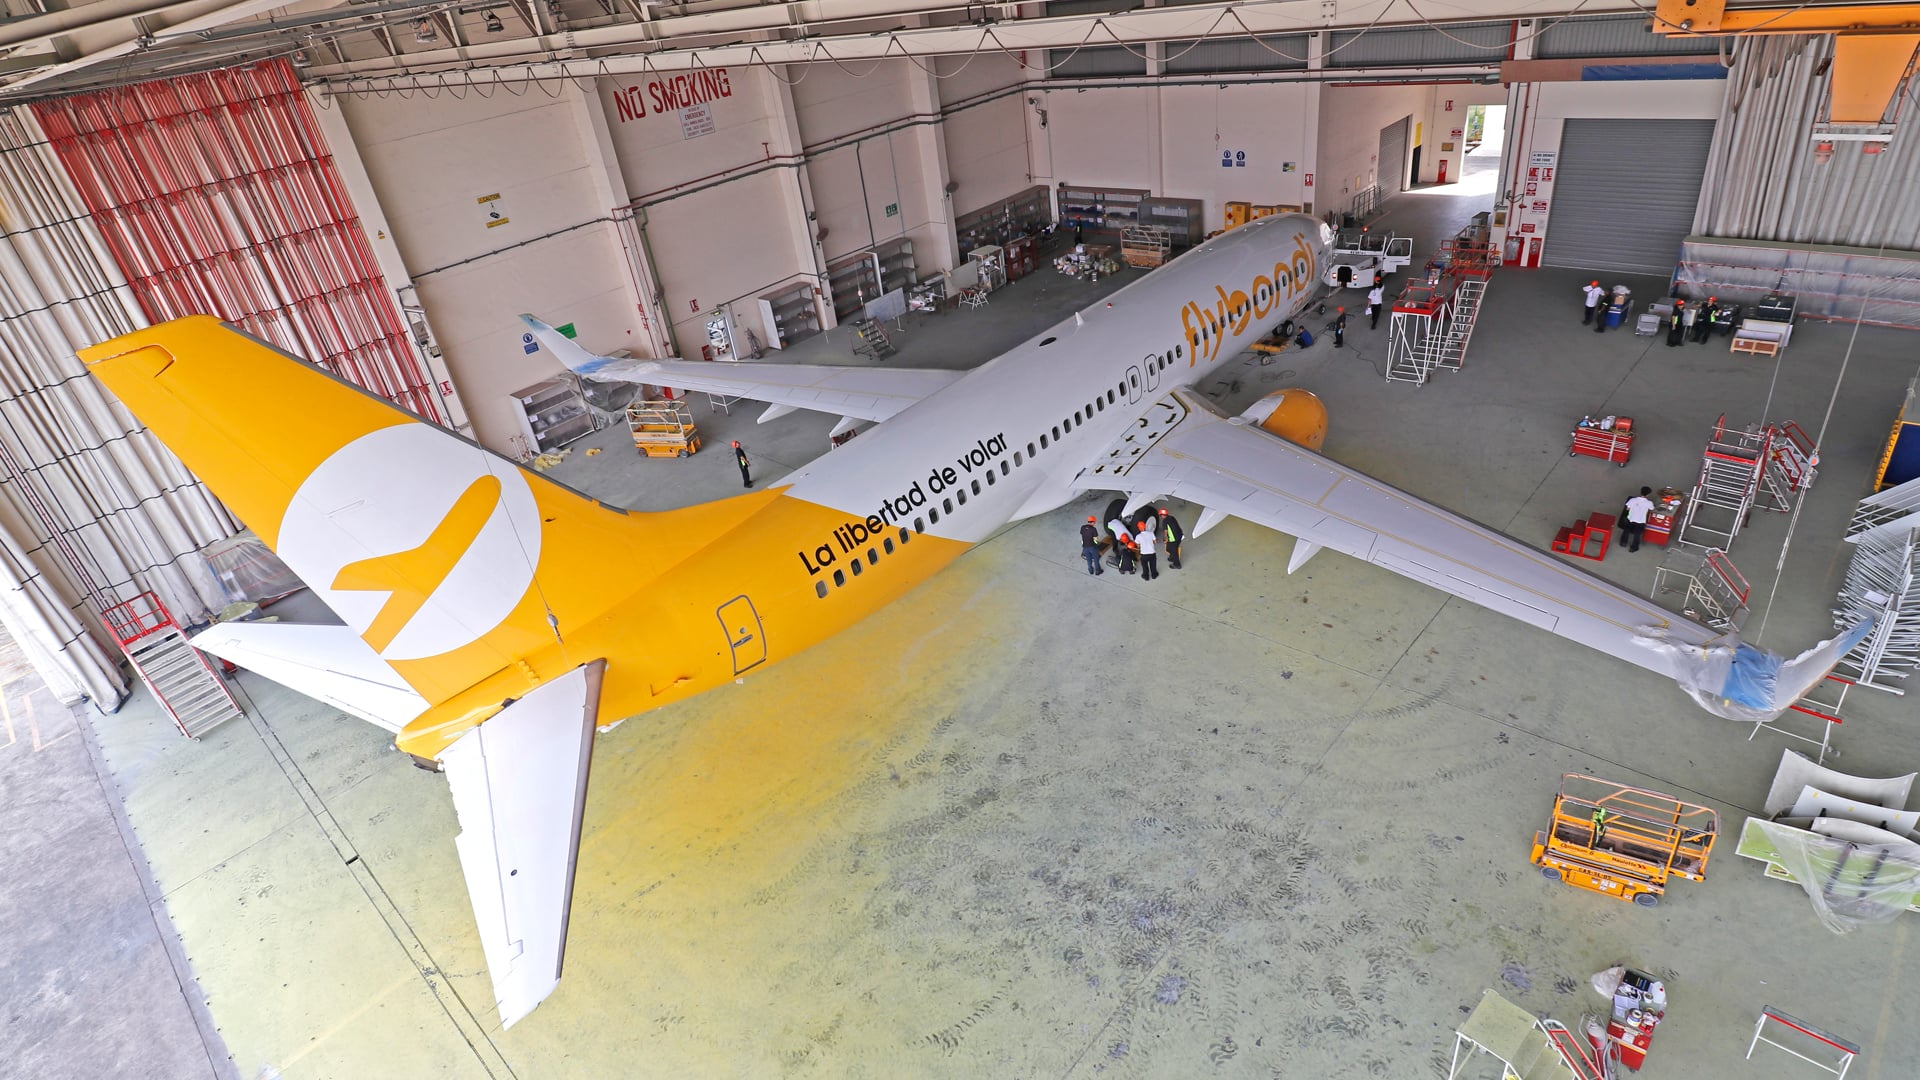 Flybondi - Time-lapse video of aircraft painting | Titan2 time-lapse camera